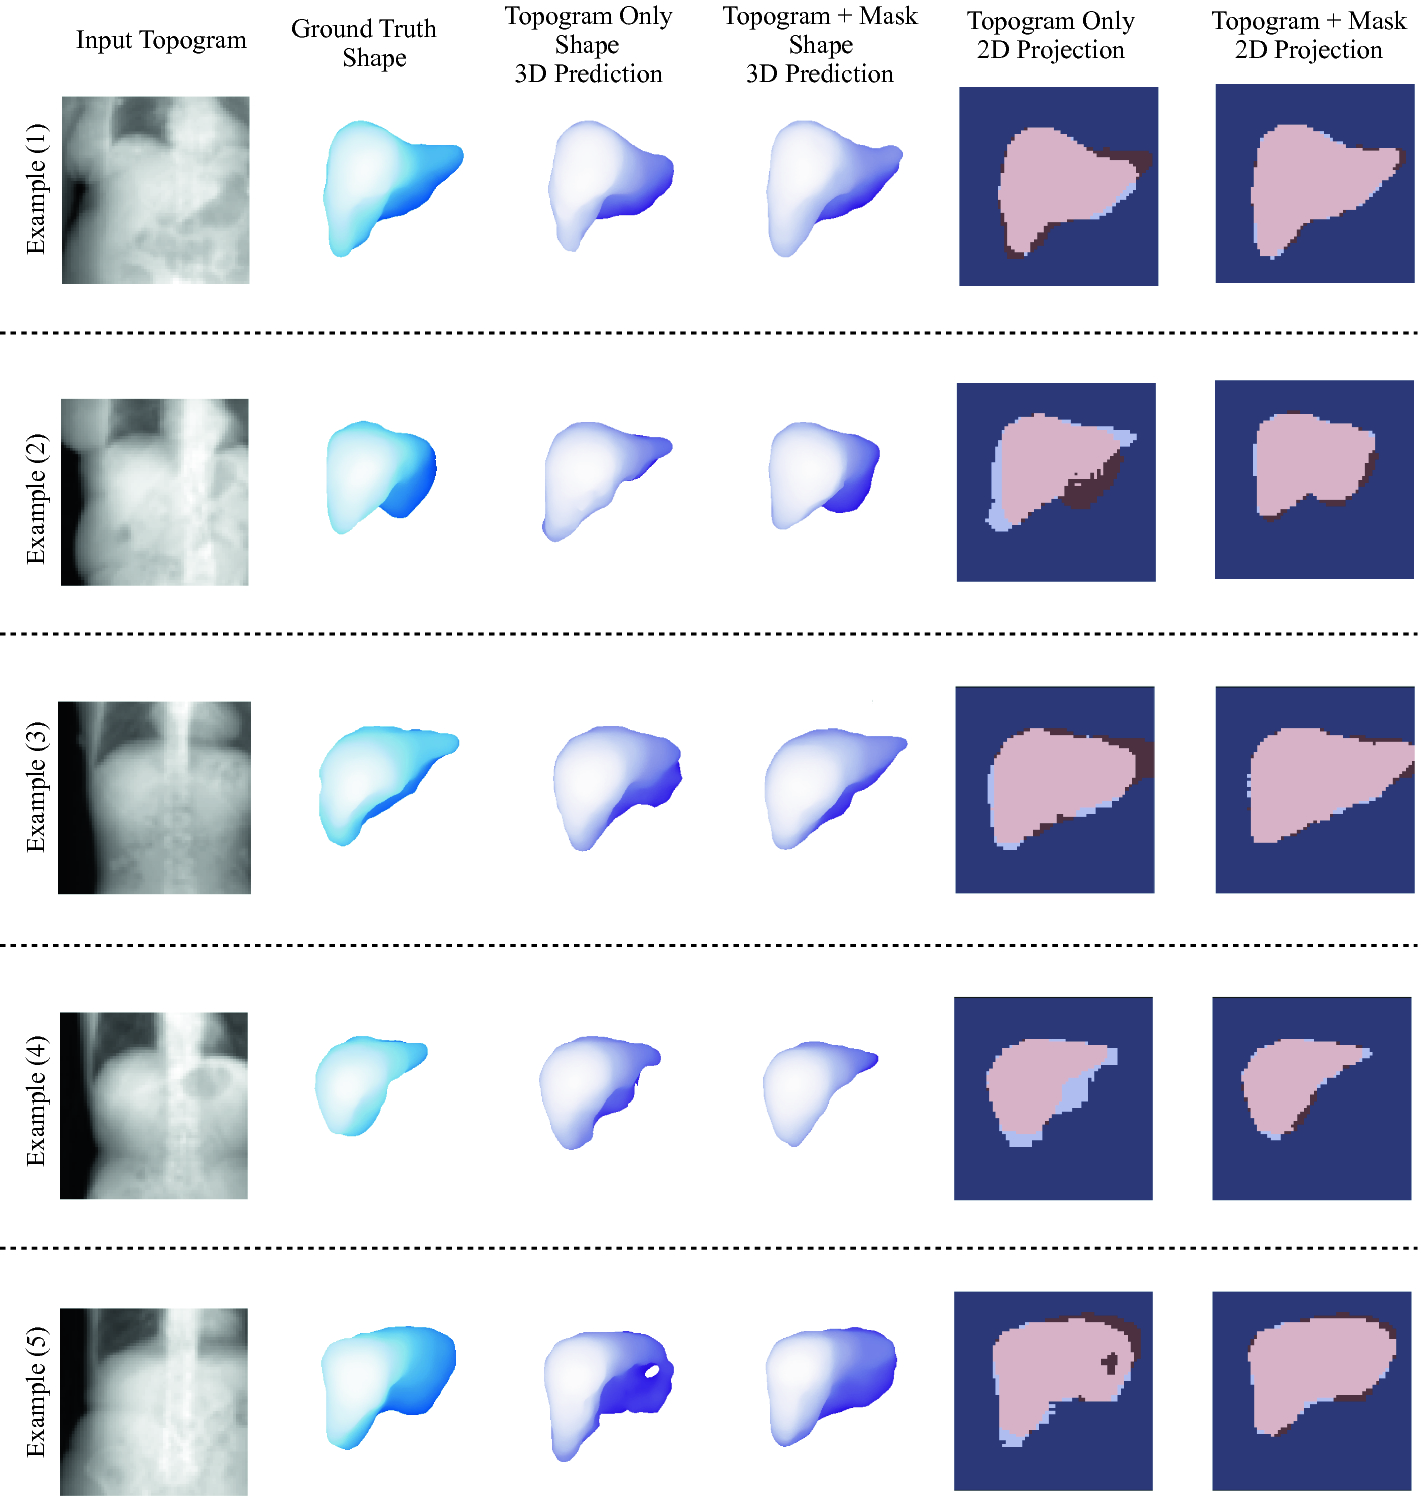 3D Organ Shape Reconstruction from Topogram Images